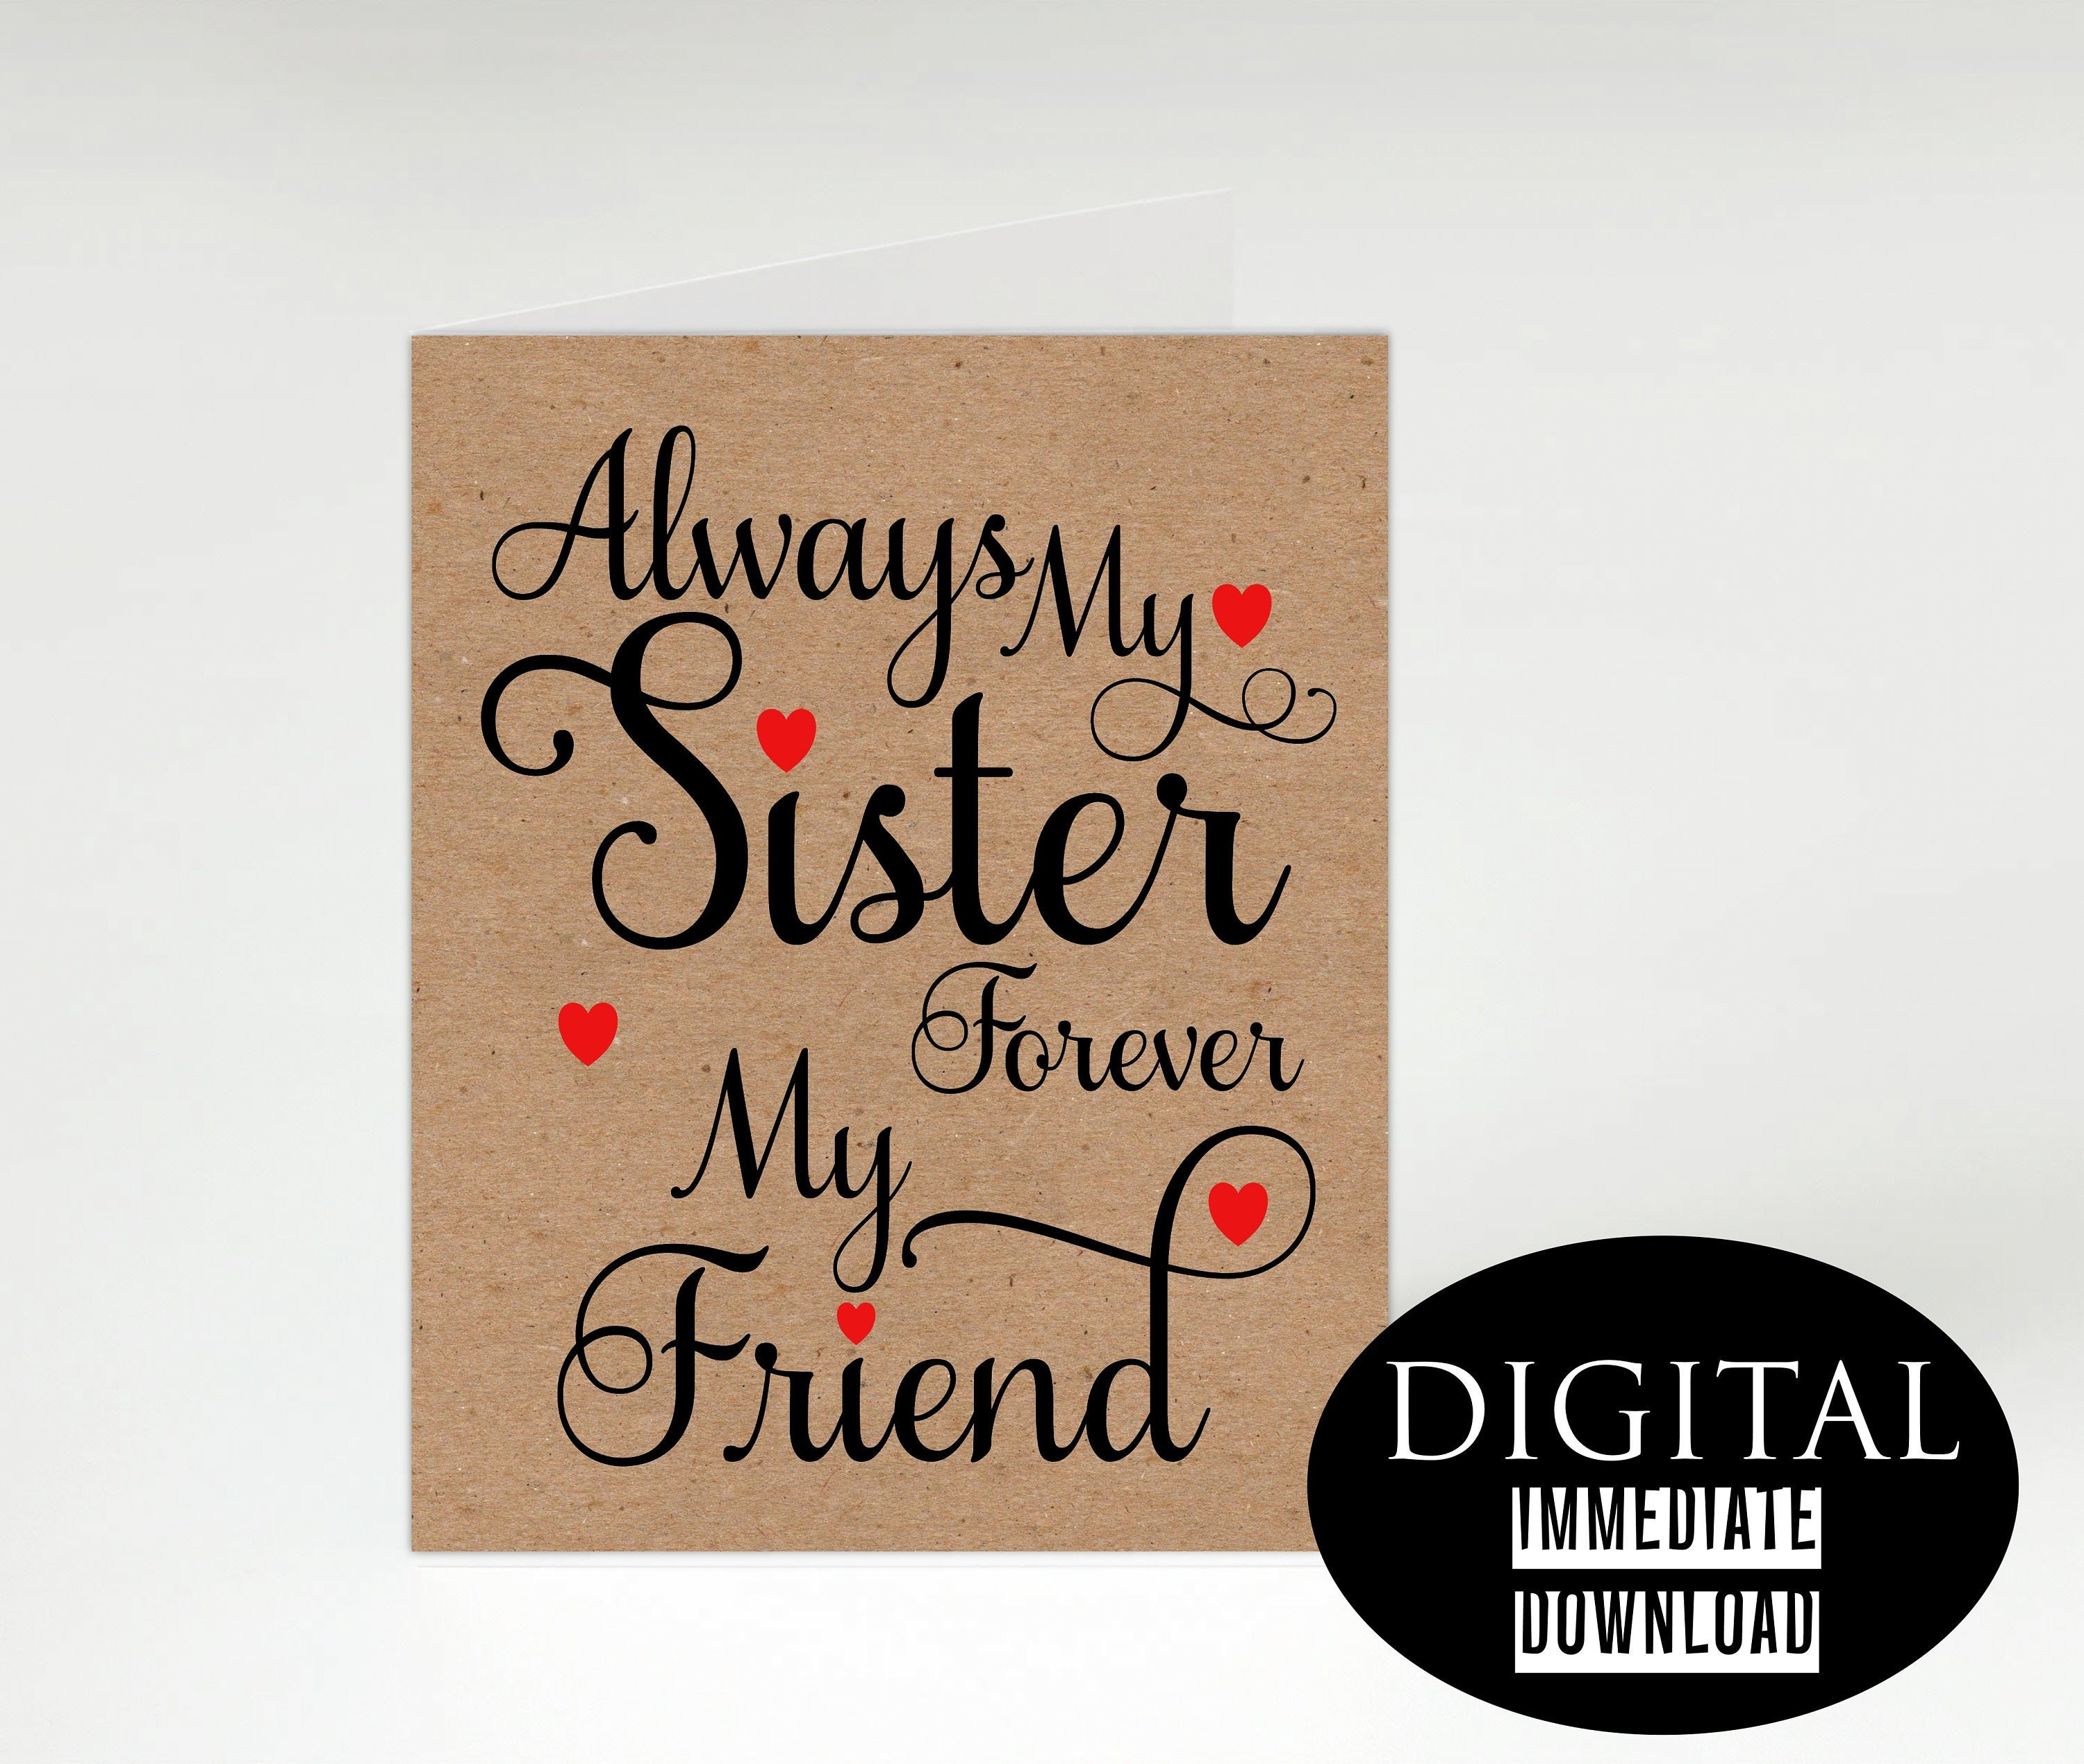 Sister Birthday CardPrintable CardInstant Download CardPDF CardGreeting CardHappy